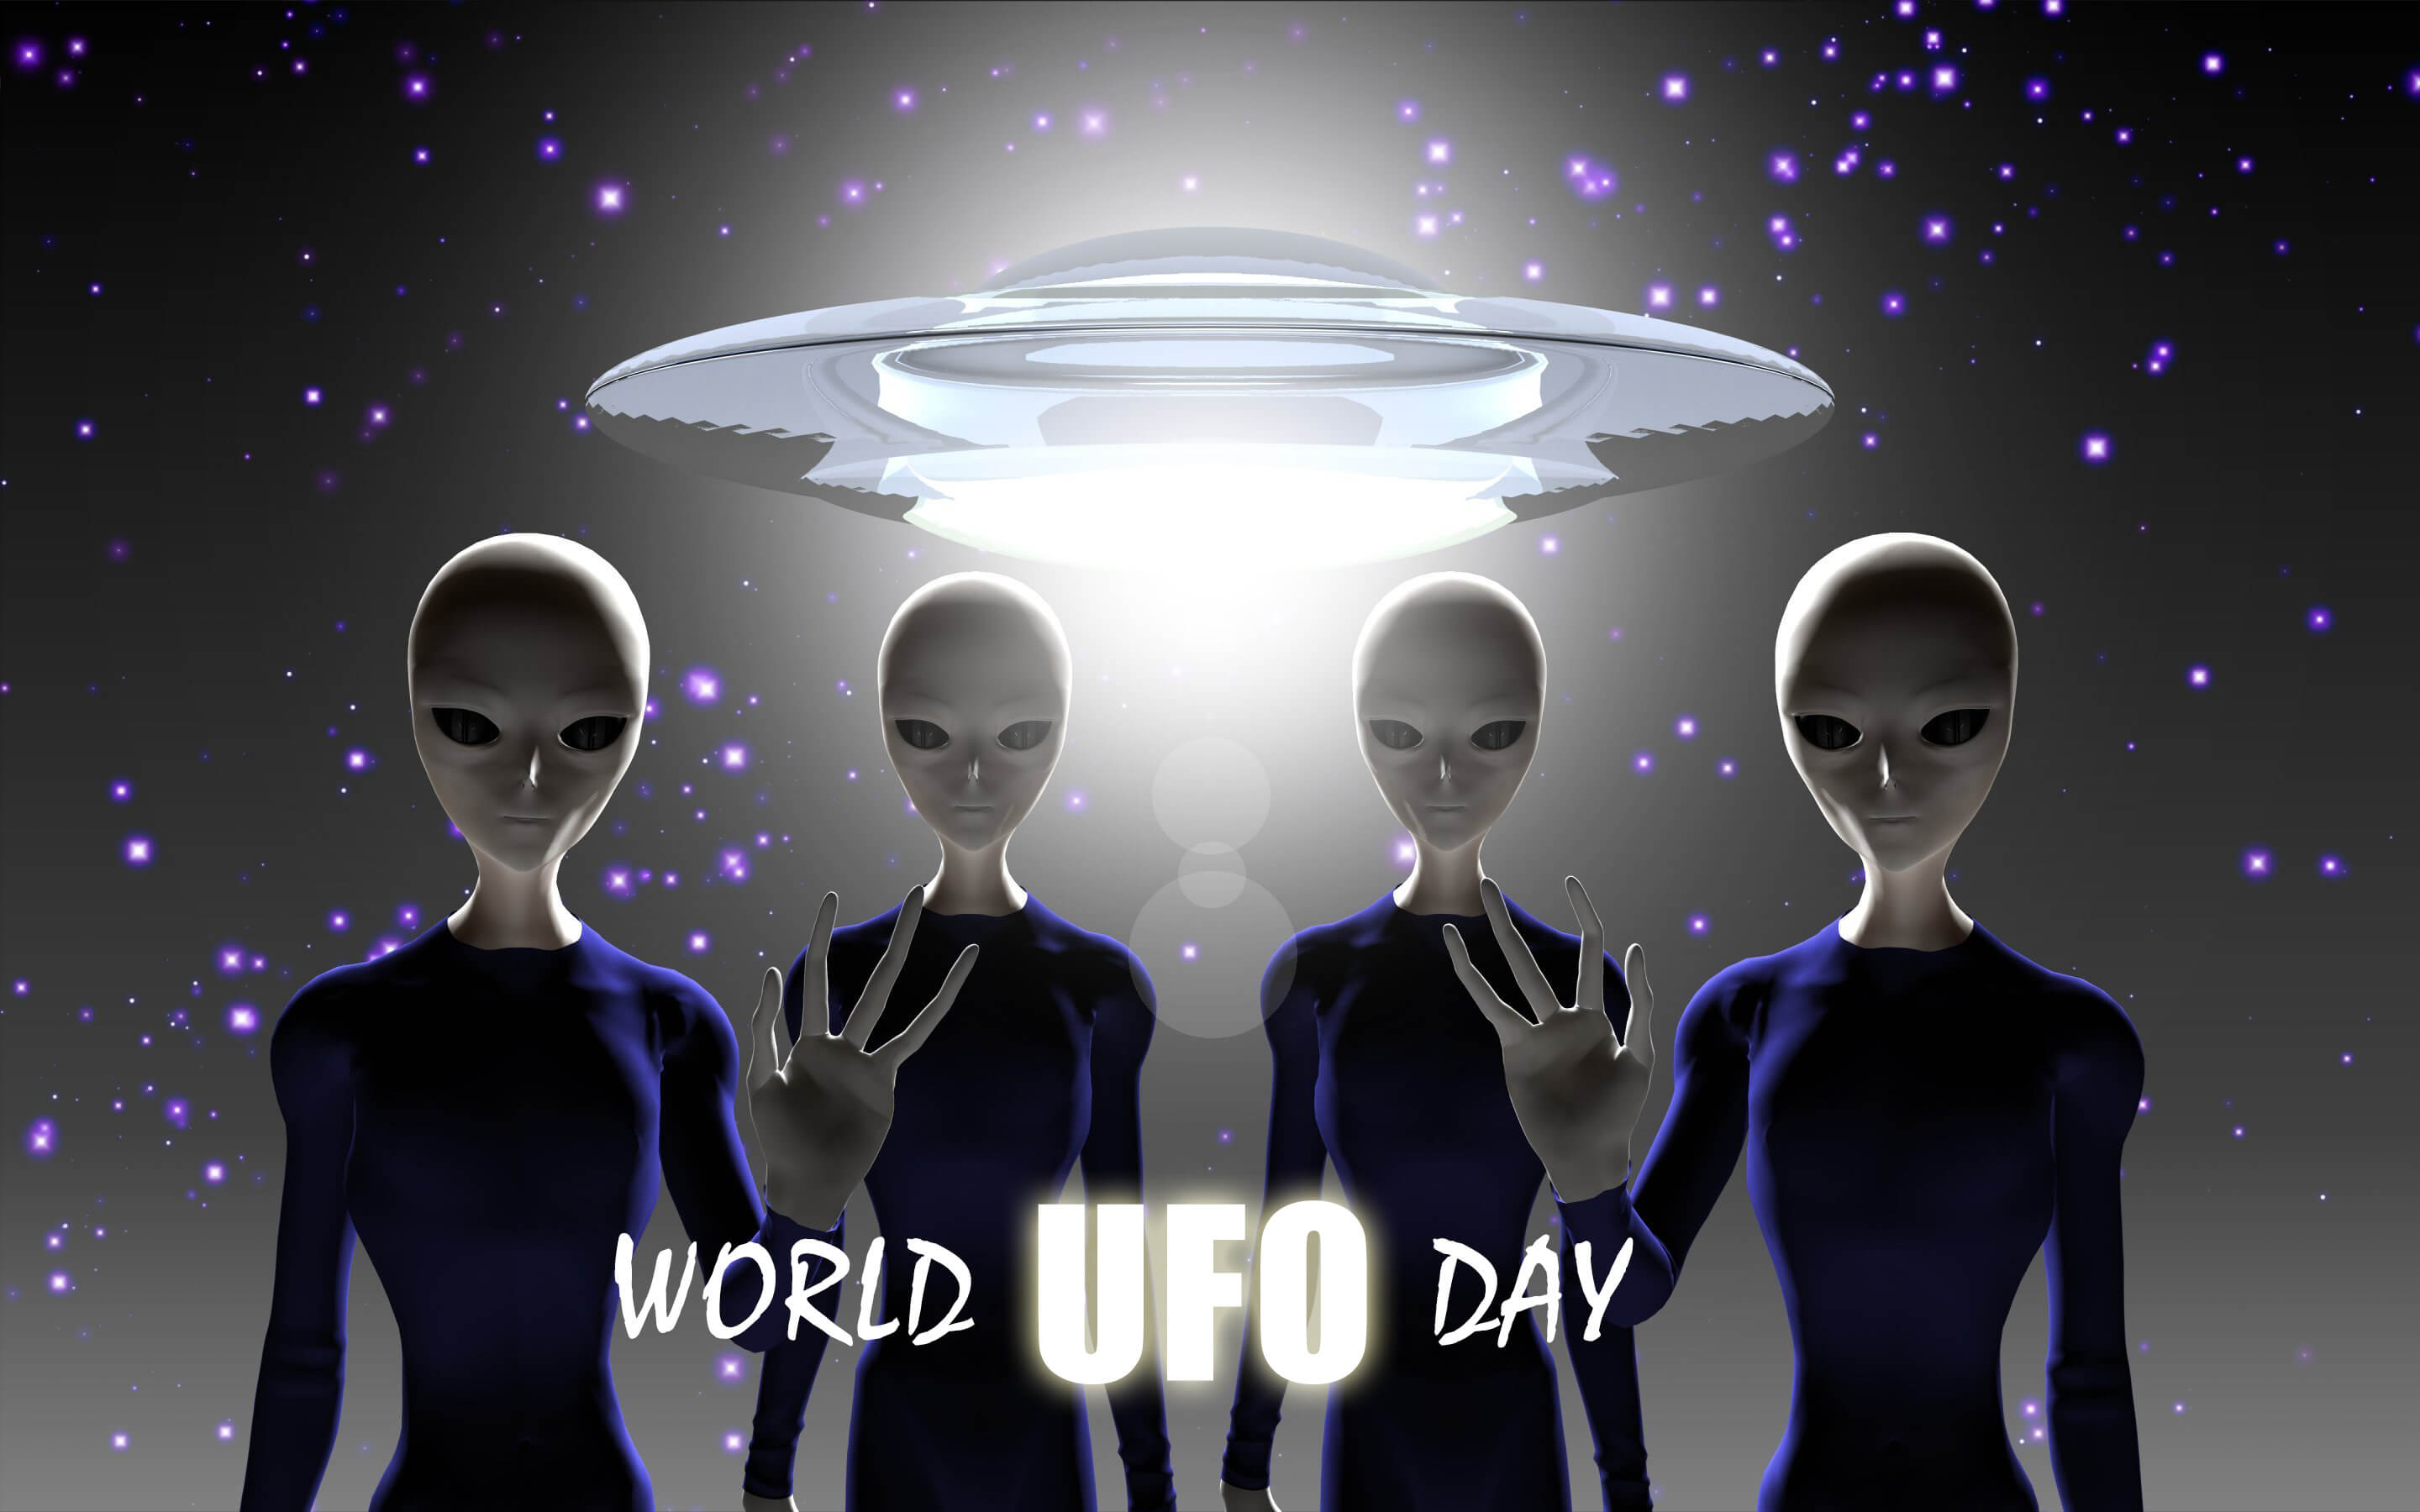 world ufo day unidentified flying object saucer aliens hd wallpaper